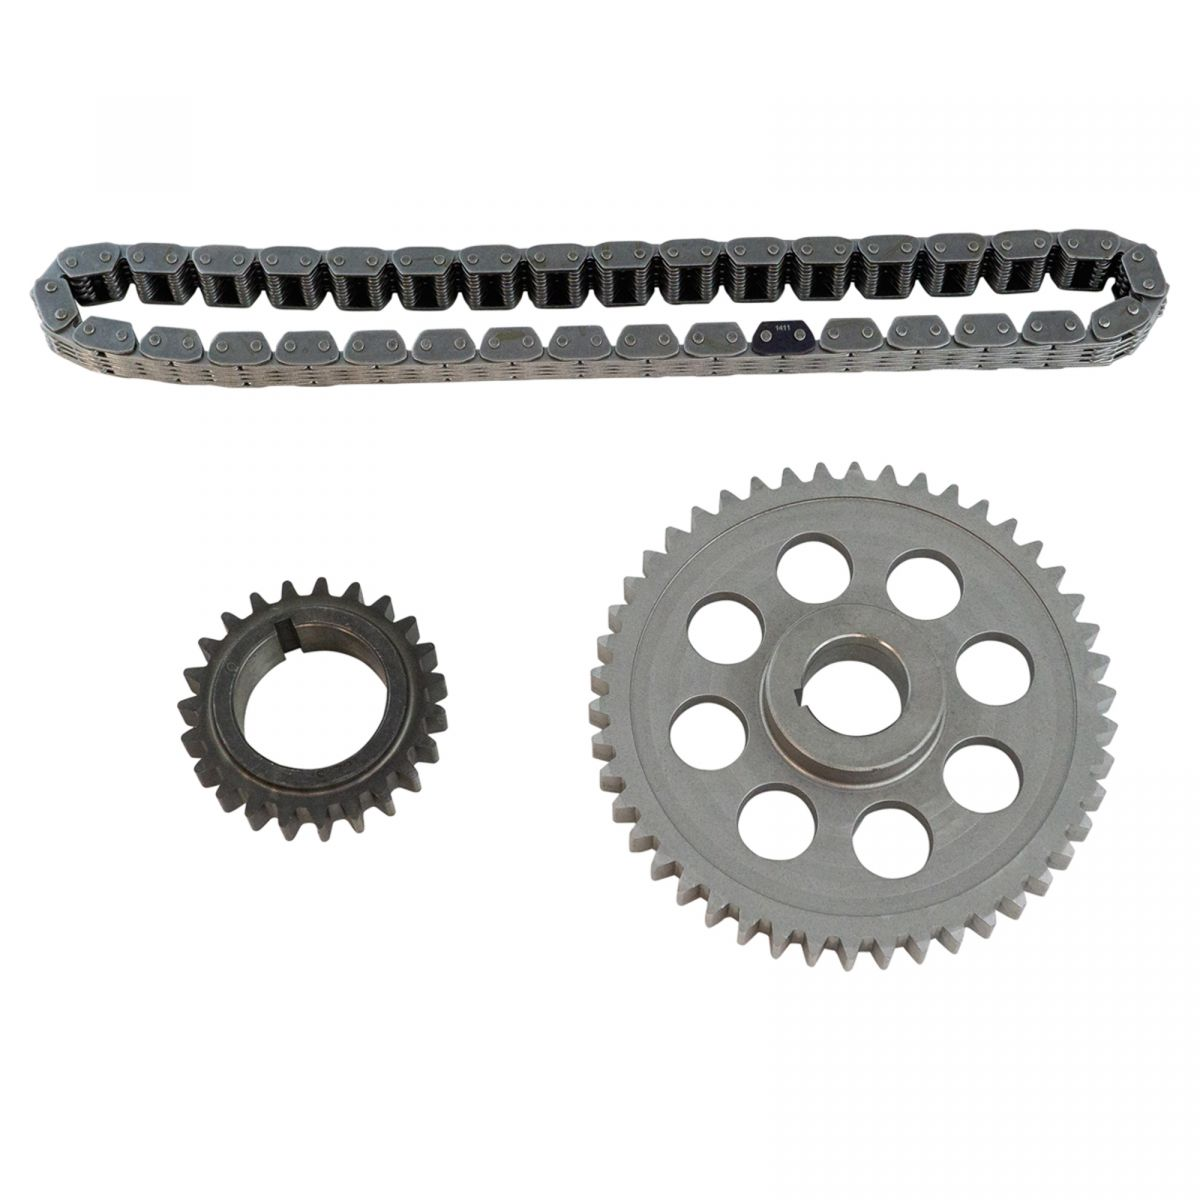 Timing Chain & Sprocket Kit Set For Jeep Dodge Ram 1500